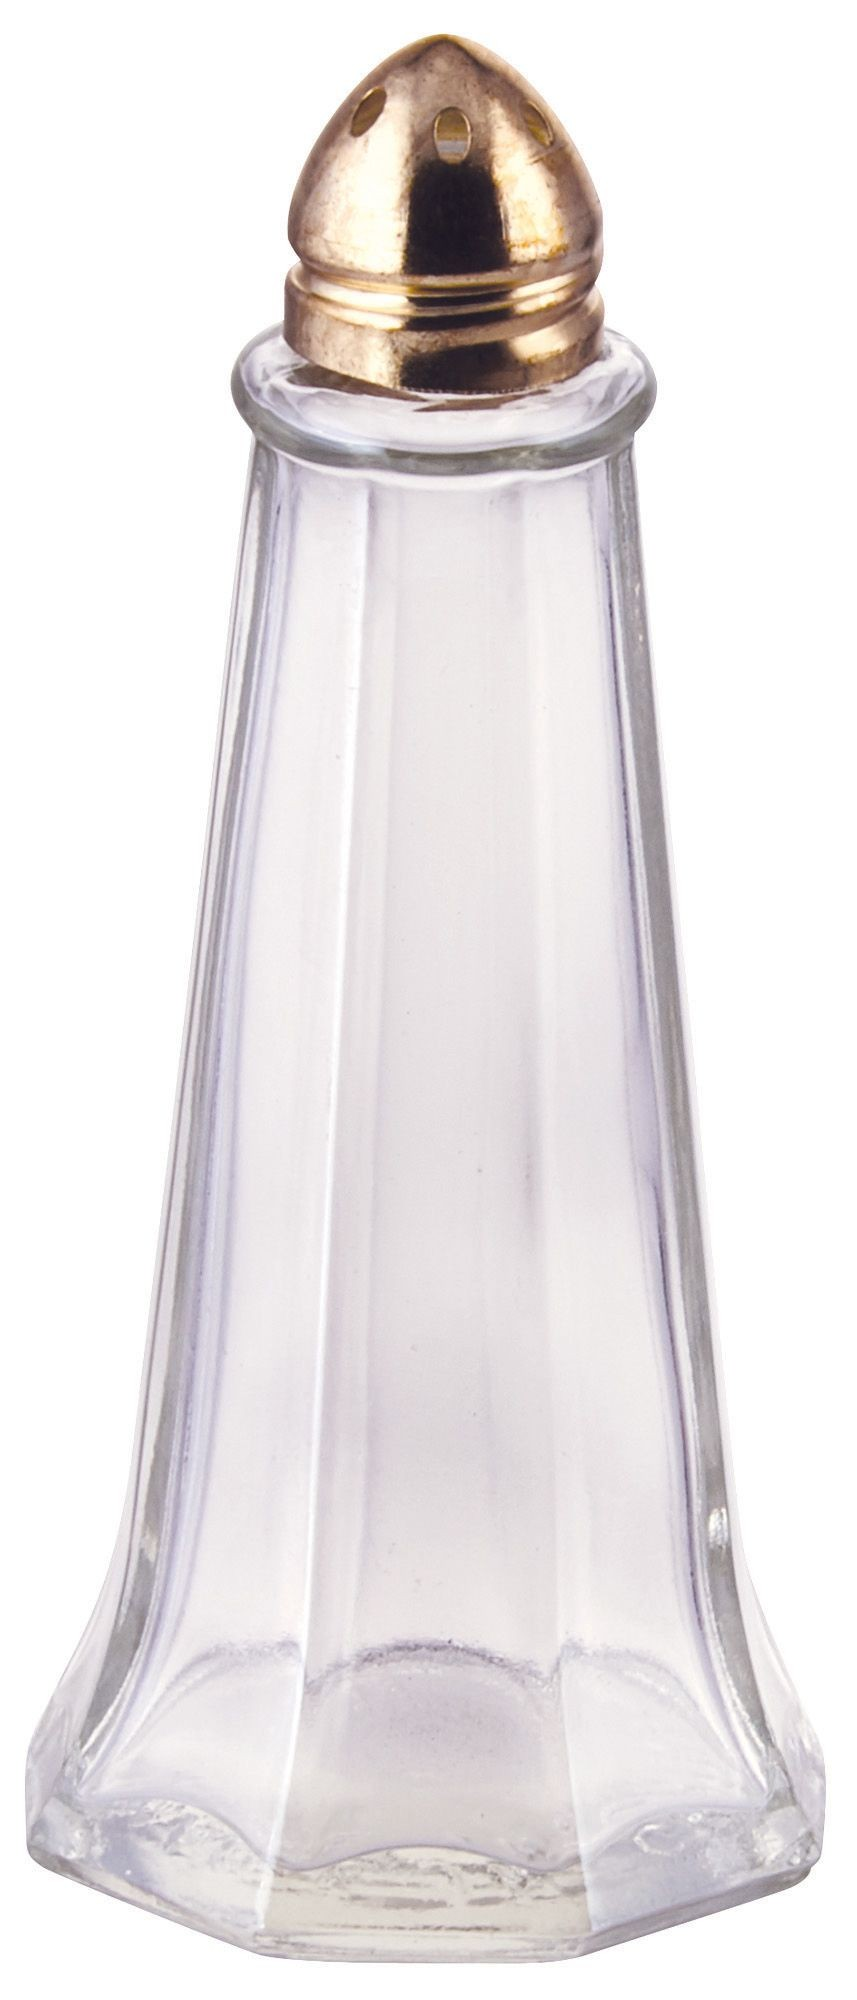 Winco G-111 Glass 1 oz. Tower Salt Shaker with Gold Top